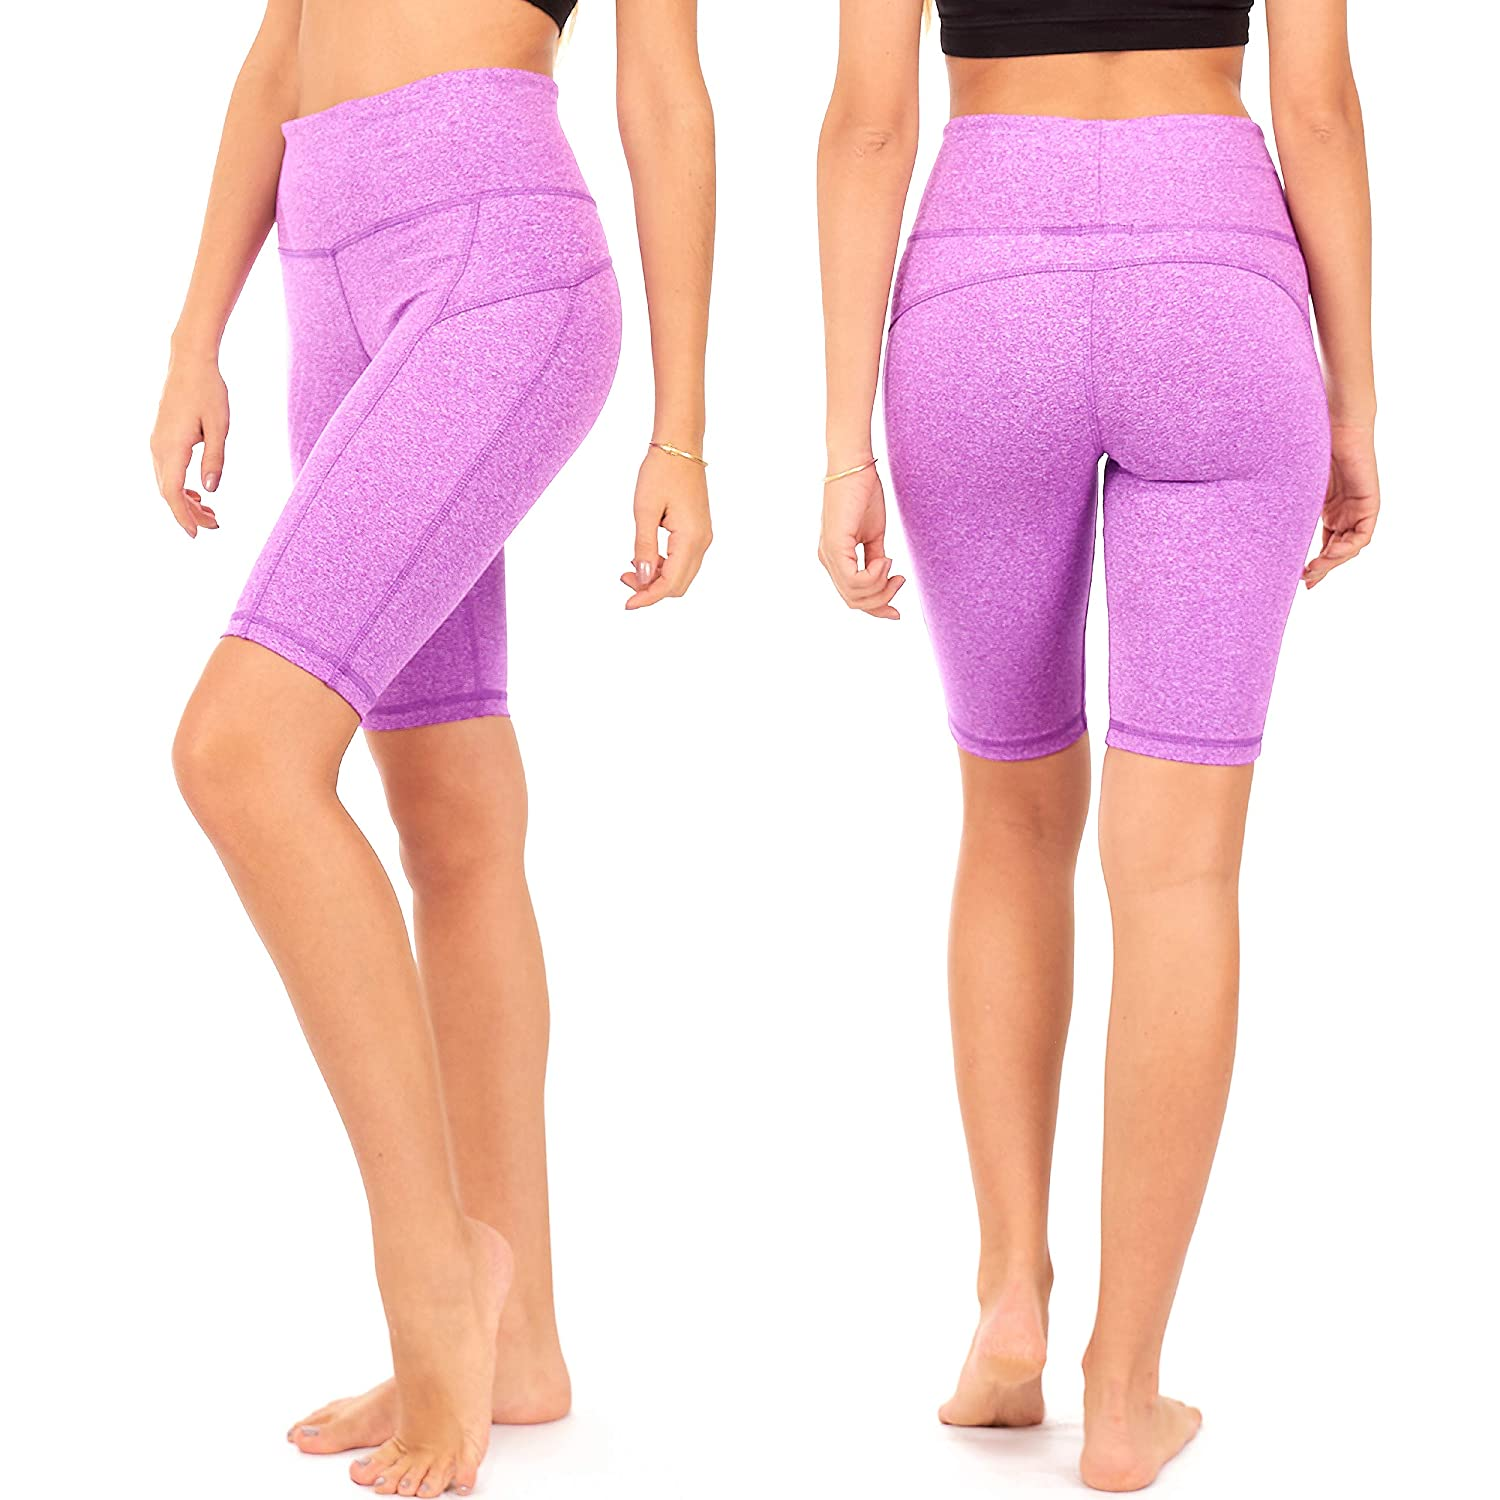 """S3 DEAR SPARKLE Yoga Shorts Running Short with 3 Pockets for Women 9/"""" Workout High Waist Tummy Control Plus"""